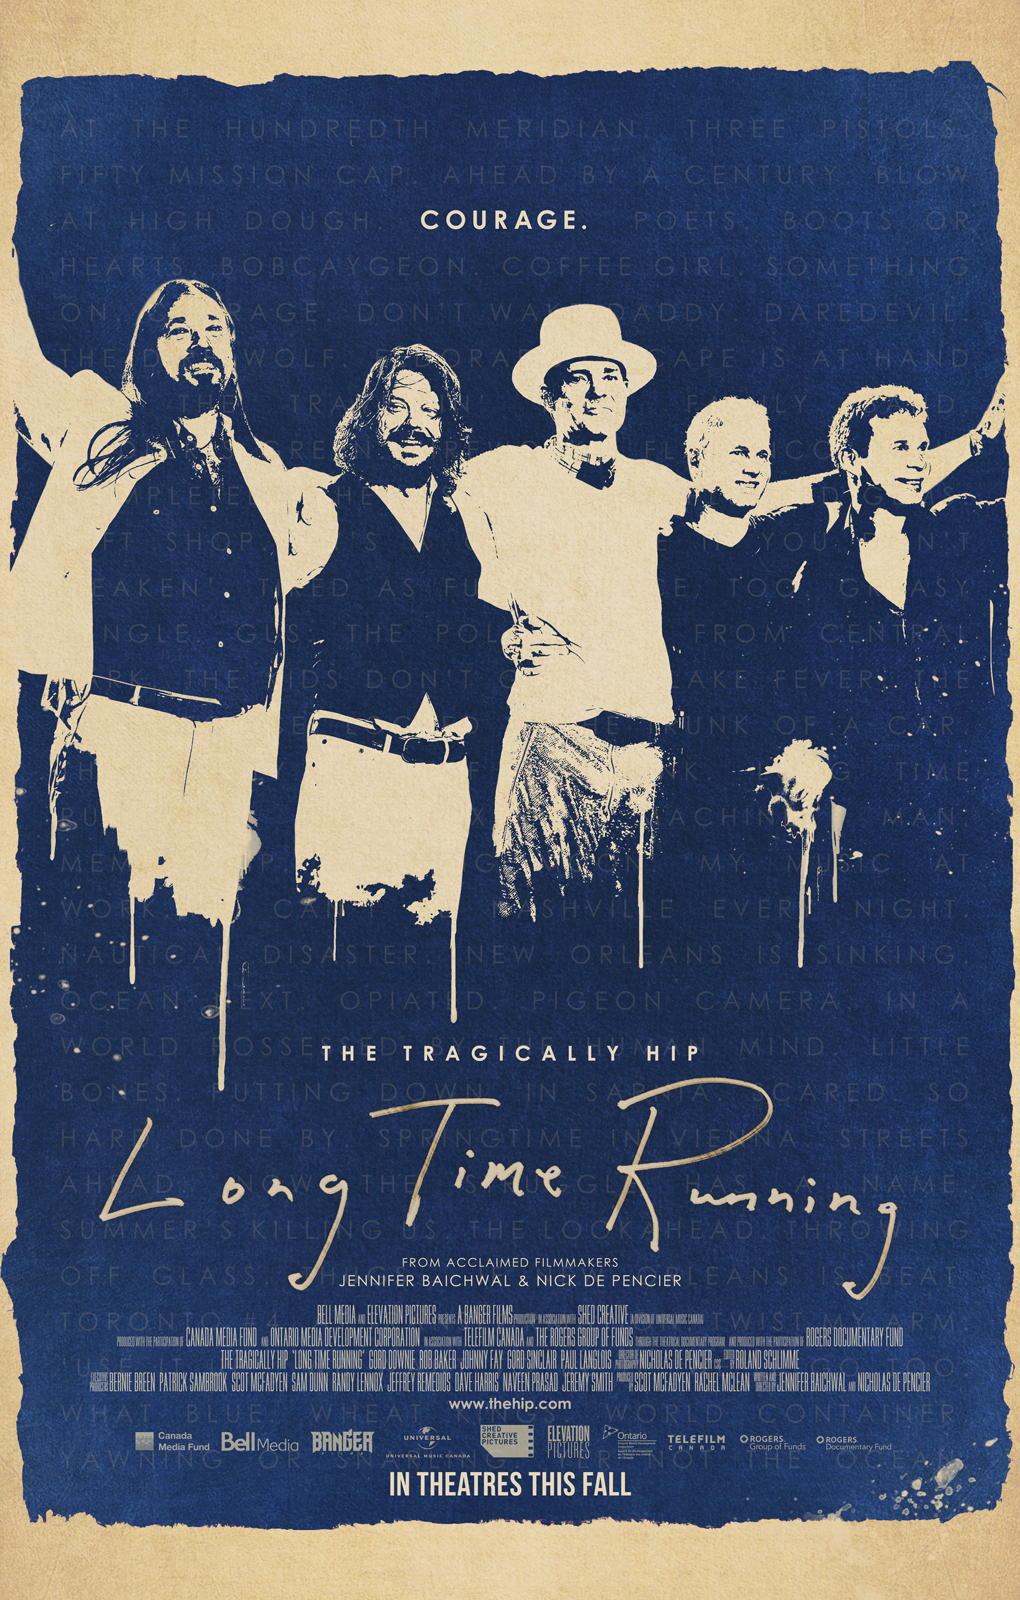 The Tragically Hip Long Time Running